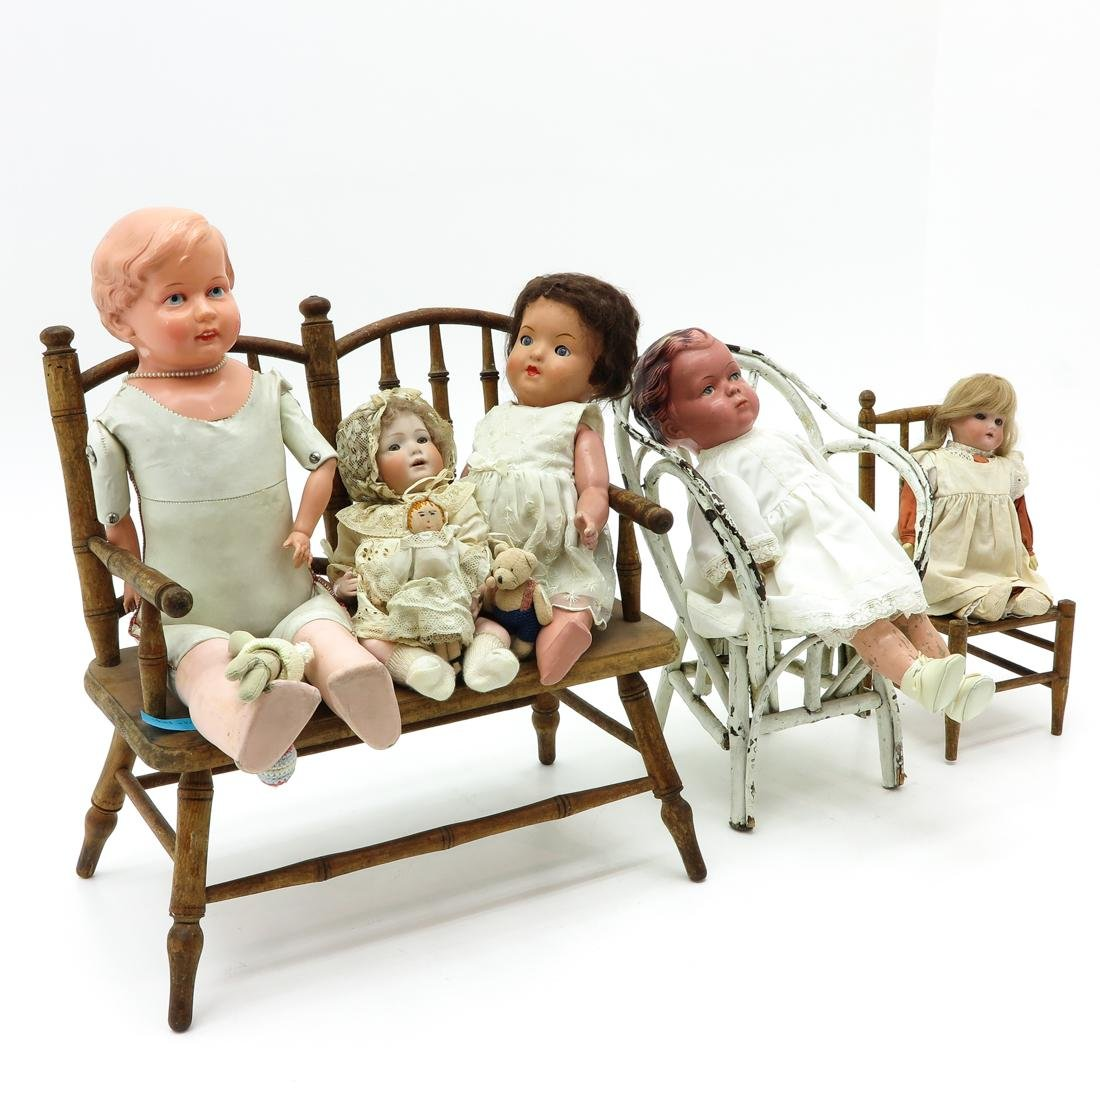 Diverse Lot of Vintage Dolls and Doll Furniture - 2